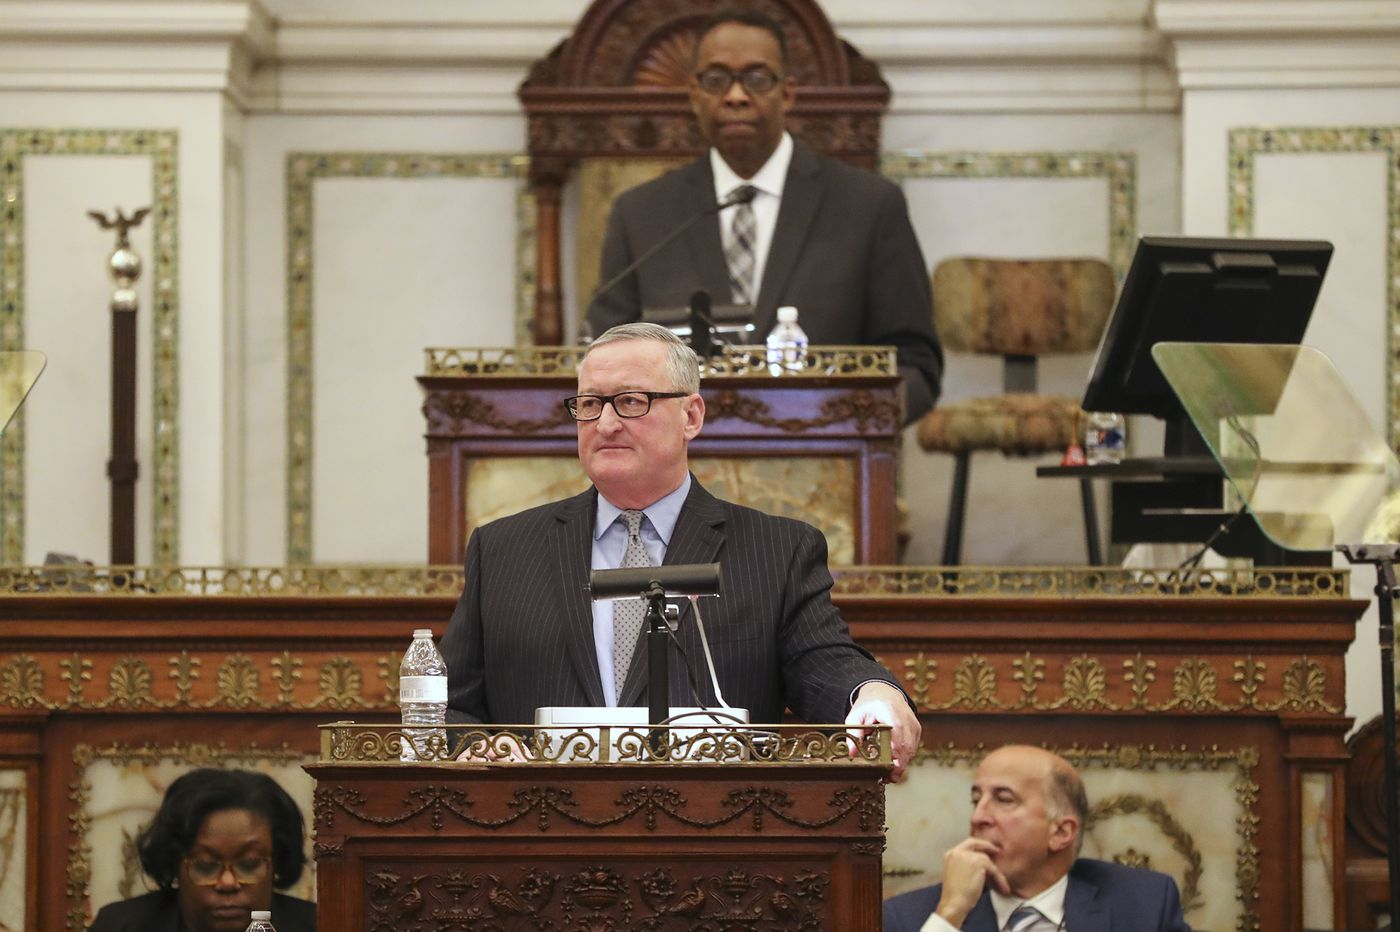 Mayor Kenney's pandemic budget proposal falls short | Opinion